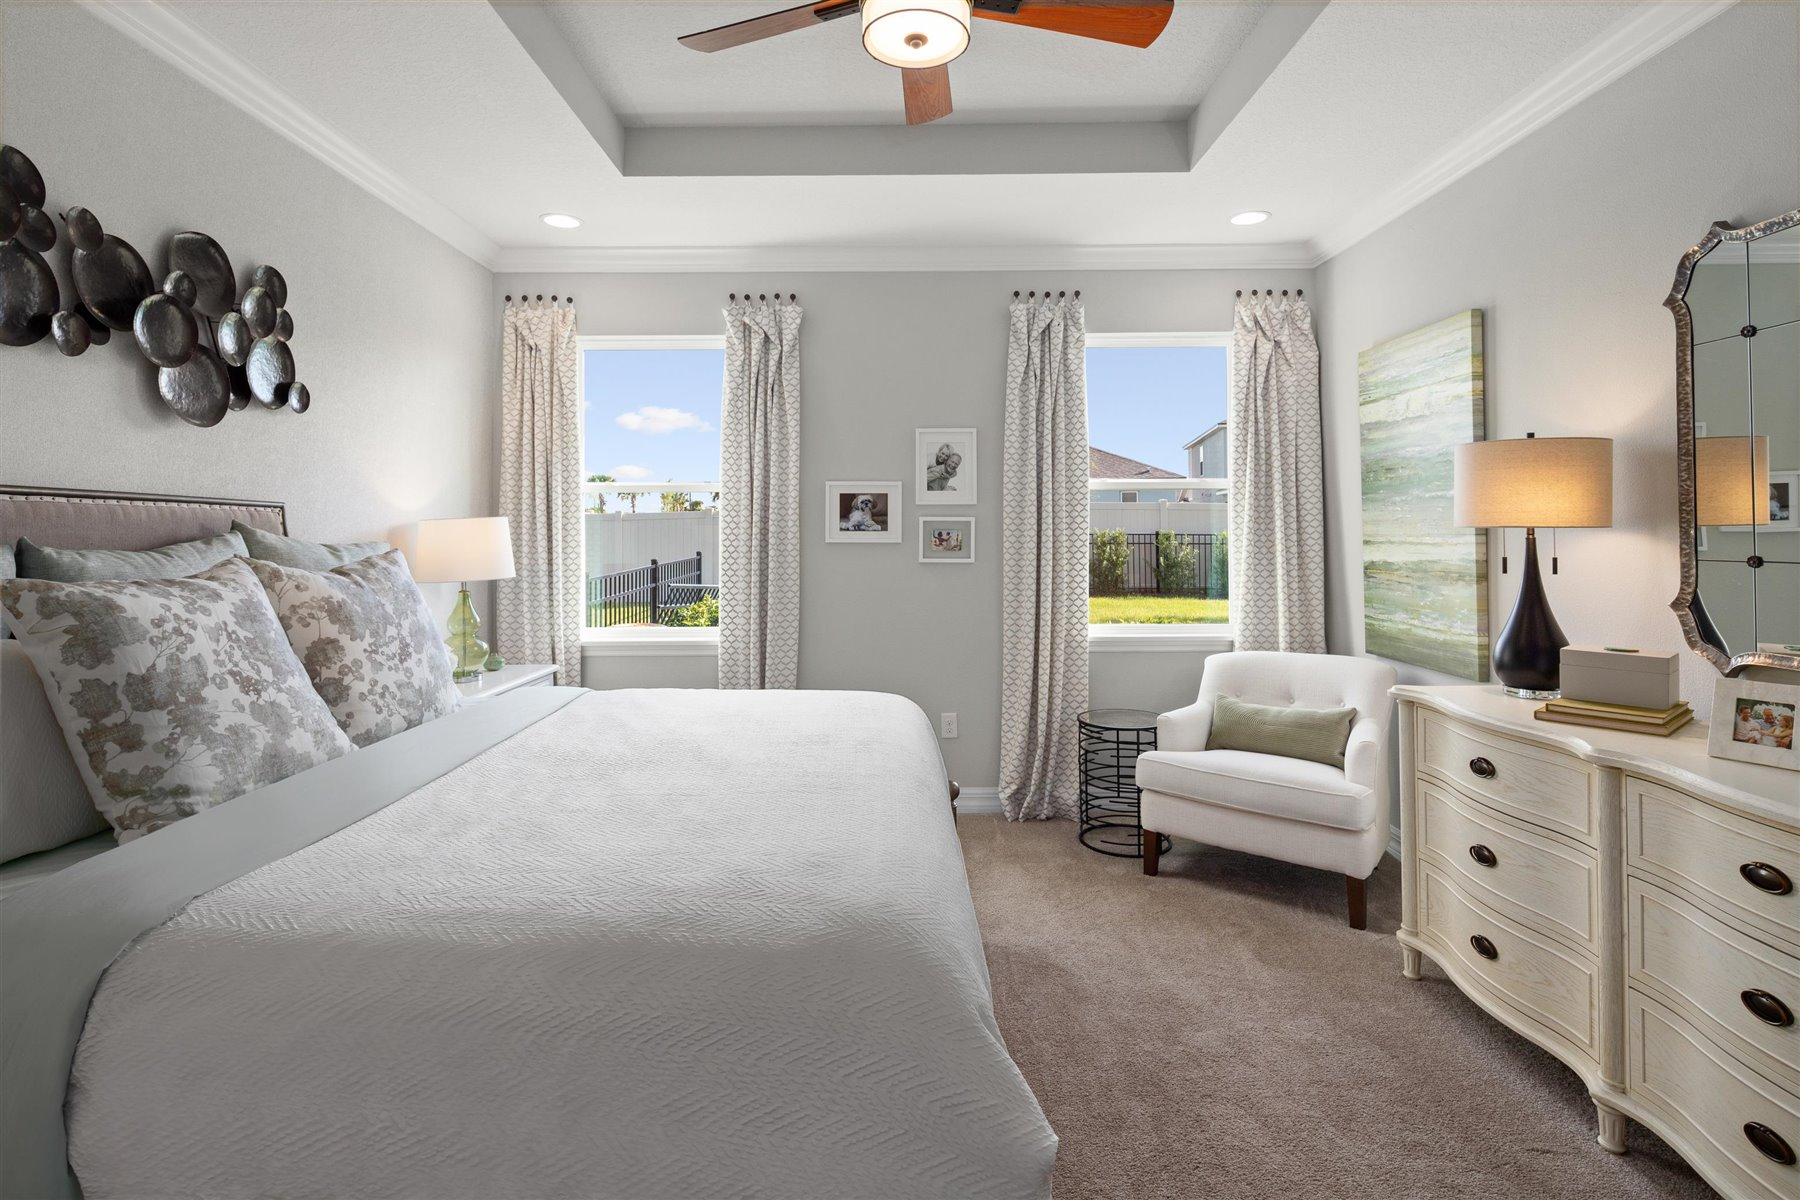 Crescent Plan Bedroom at Waterbrooke in Clermont Florida by Mattamy Homes